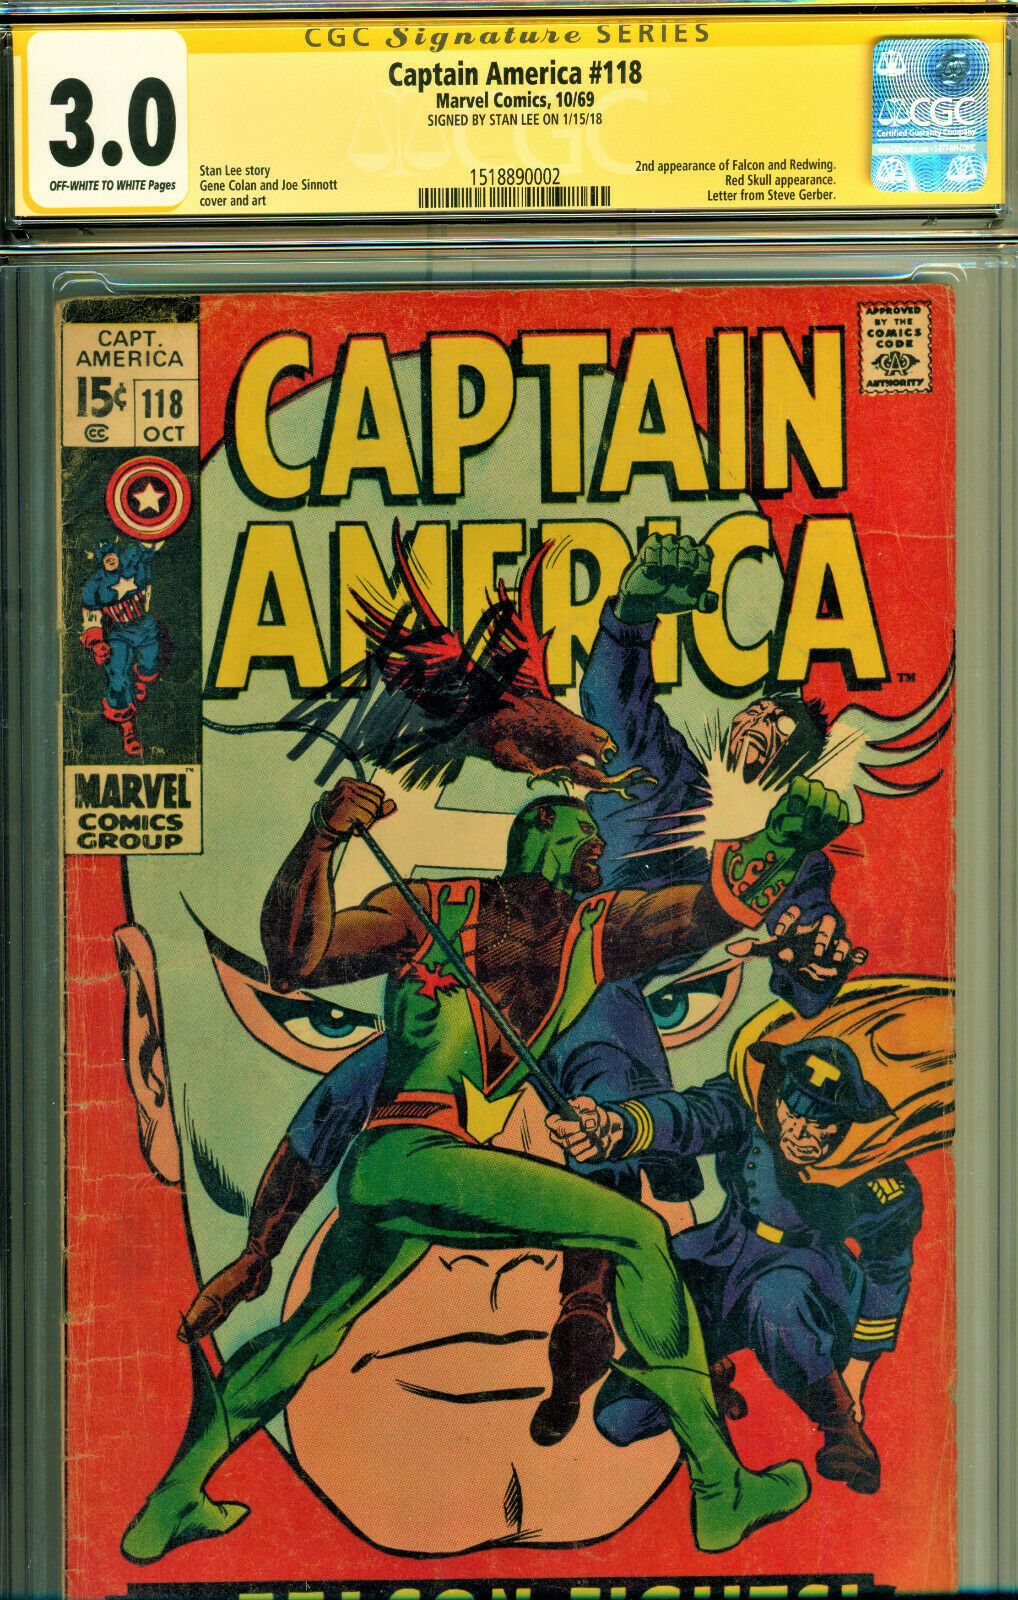 CAPTAIN AMERICA #118 CGC 3.0 SS SIGNED BY STAN LEE JACK KIRBY ART 2ND FALCON